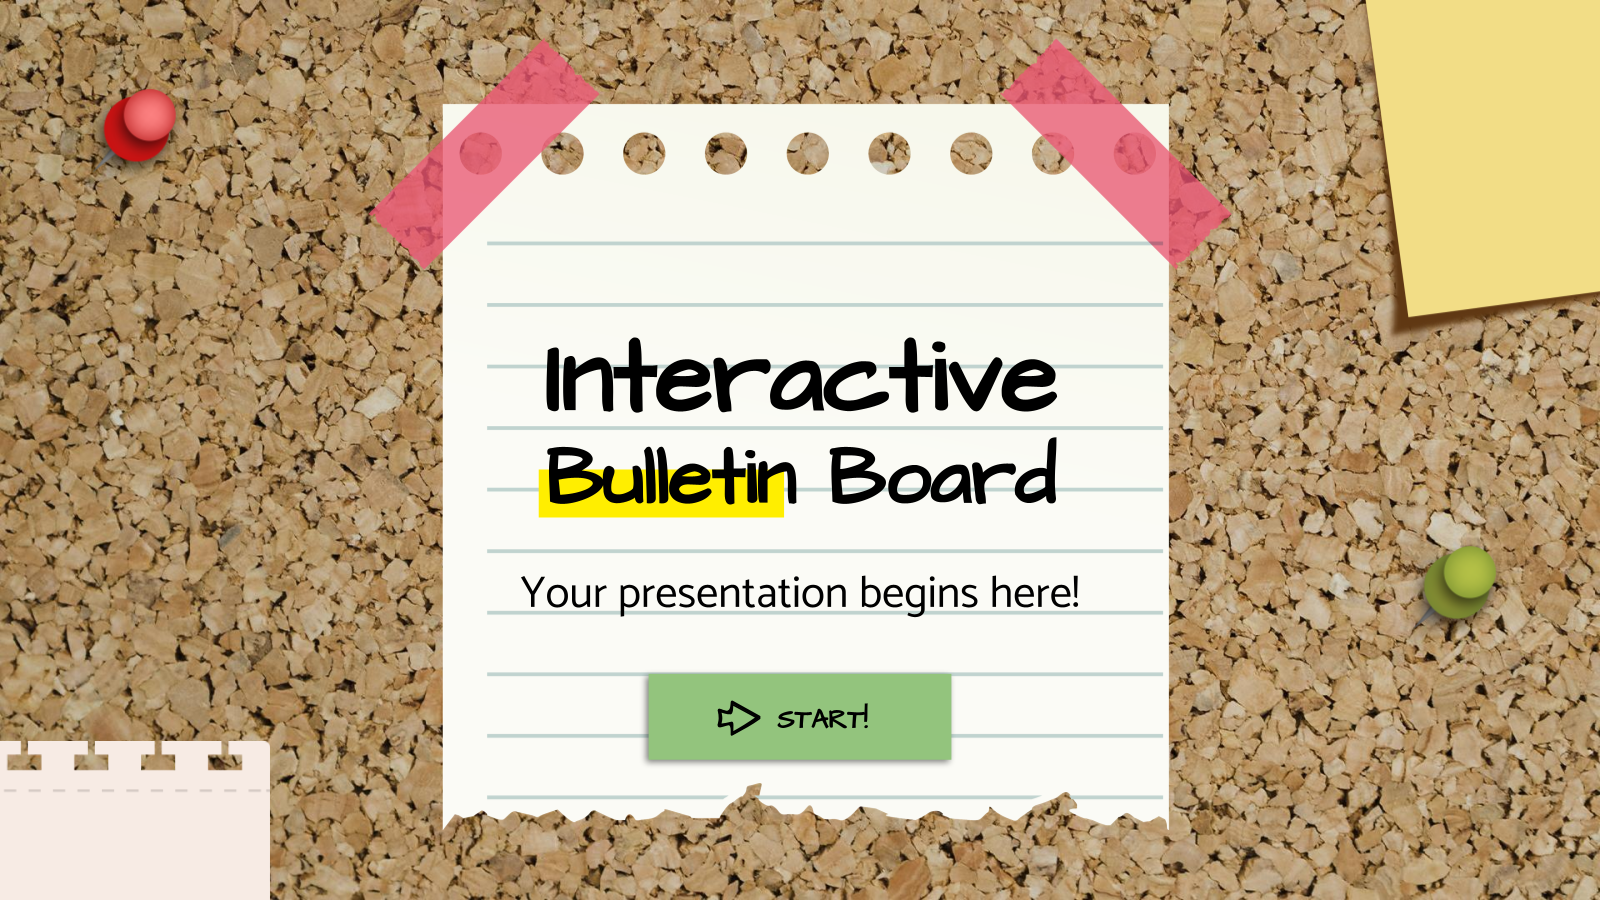 Interactive Bulletin Board presentation template